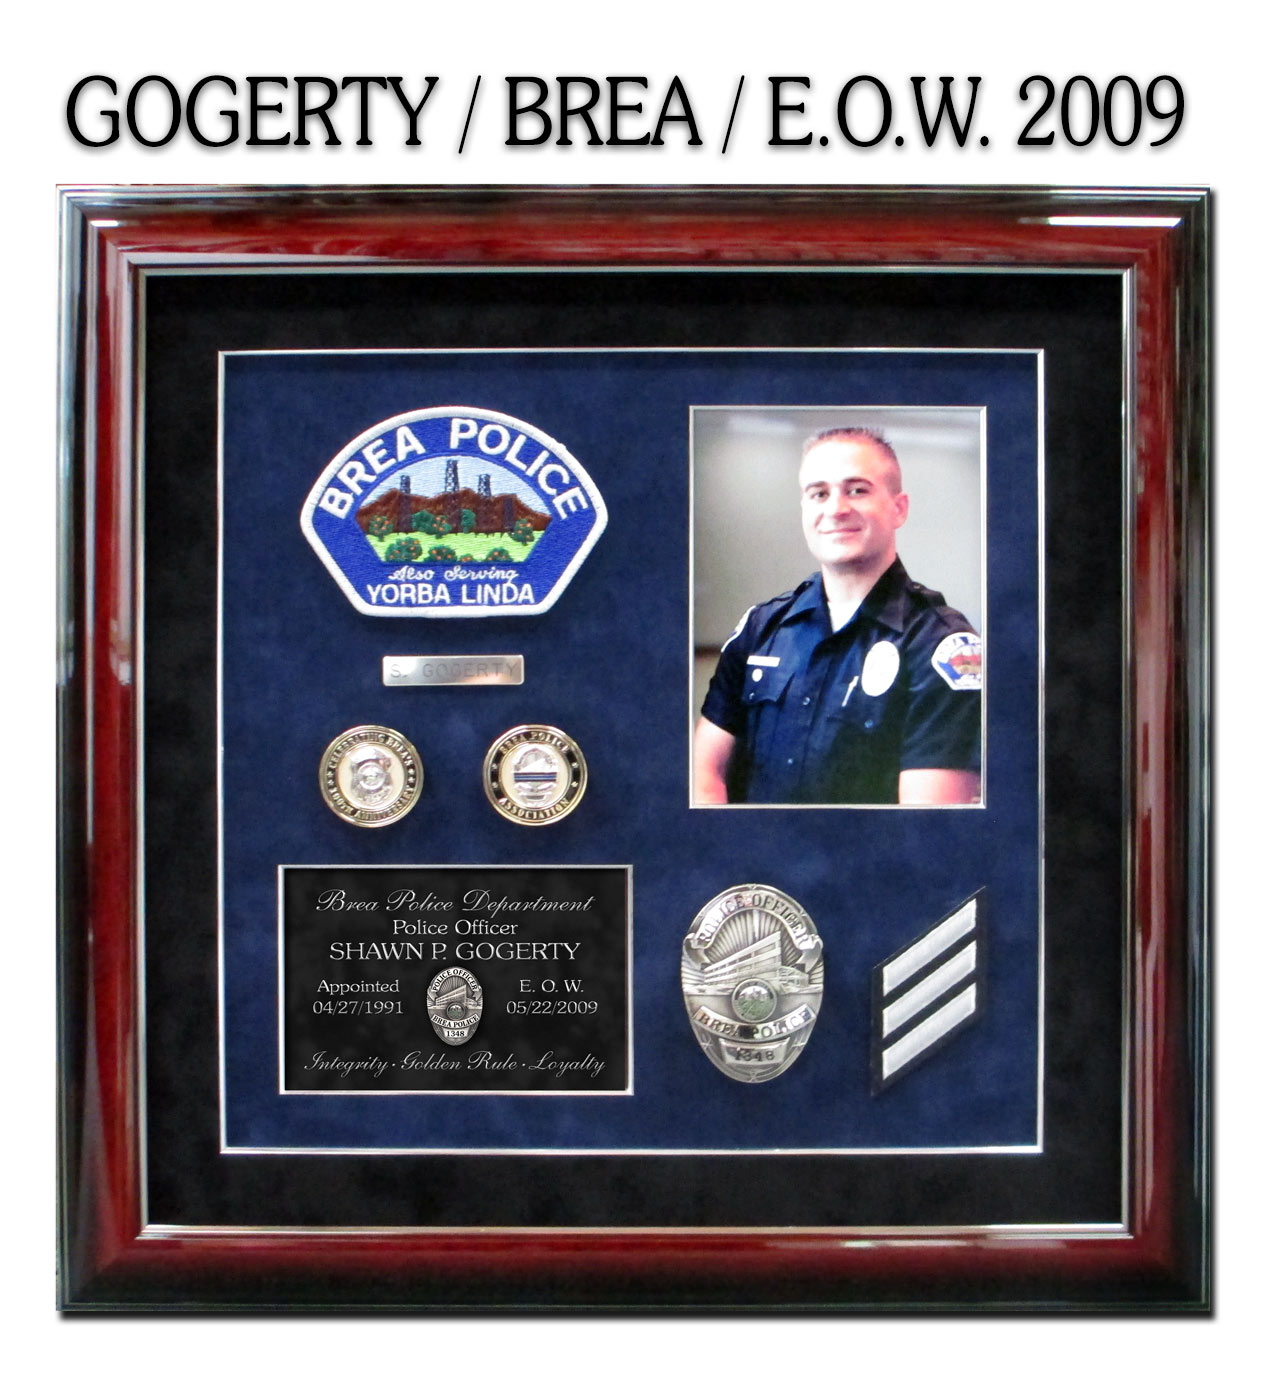 E.O.W.           Presentation from Badge Frame for Gogerty - Brea PD